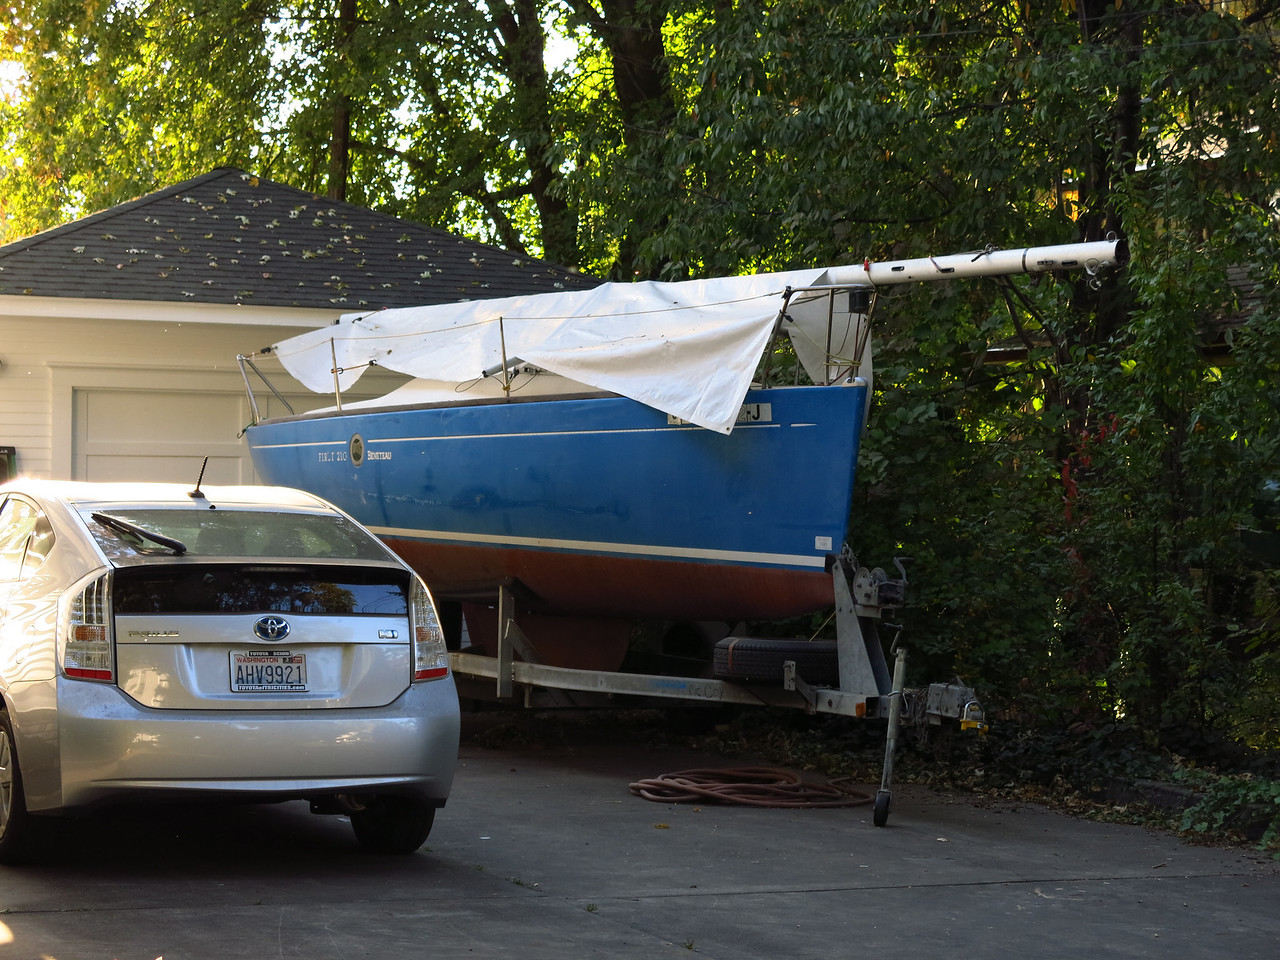 The sailboat on the trailer is a Beneteau First 210.  I used to own one.   I was surprised to see a sailboat in Walla Walla, Washington, which sits a long way from any large body of water.   I wonder where the owner sails it?  Maybe on the Snake River at Lyons Ferry.